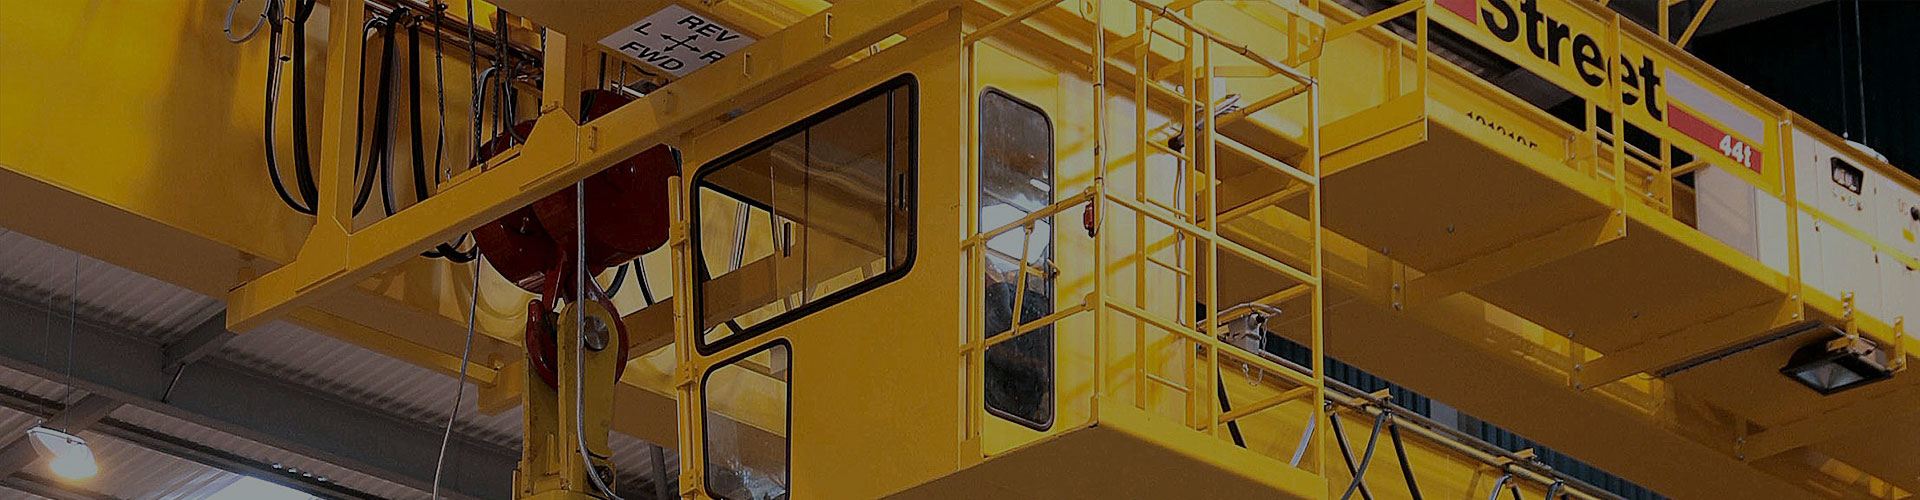 overhead-crane-training